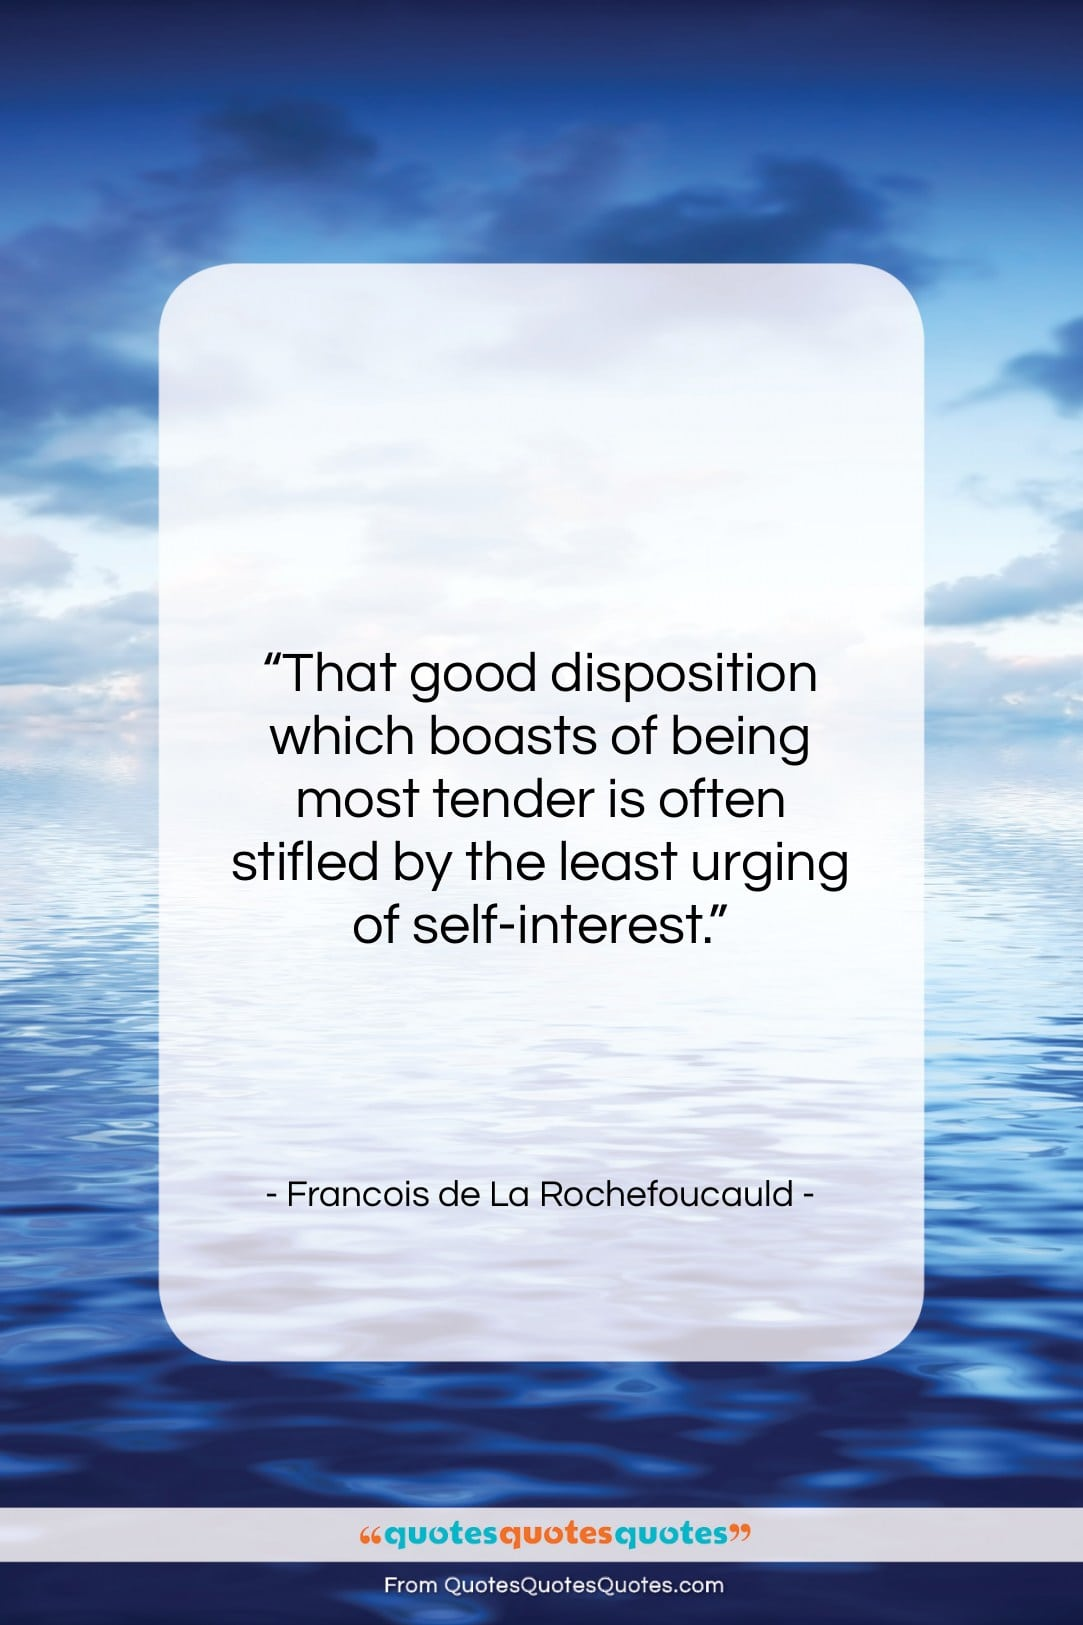 """Francois de La Rochefoucauld quote: """"That good disposition which boasts of being…""""- at QuotesQuotesQuotes.com"""